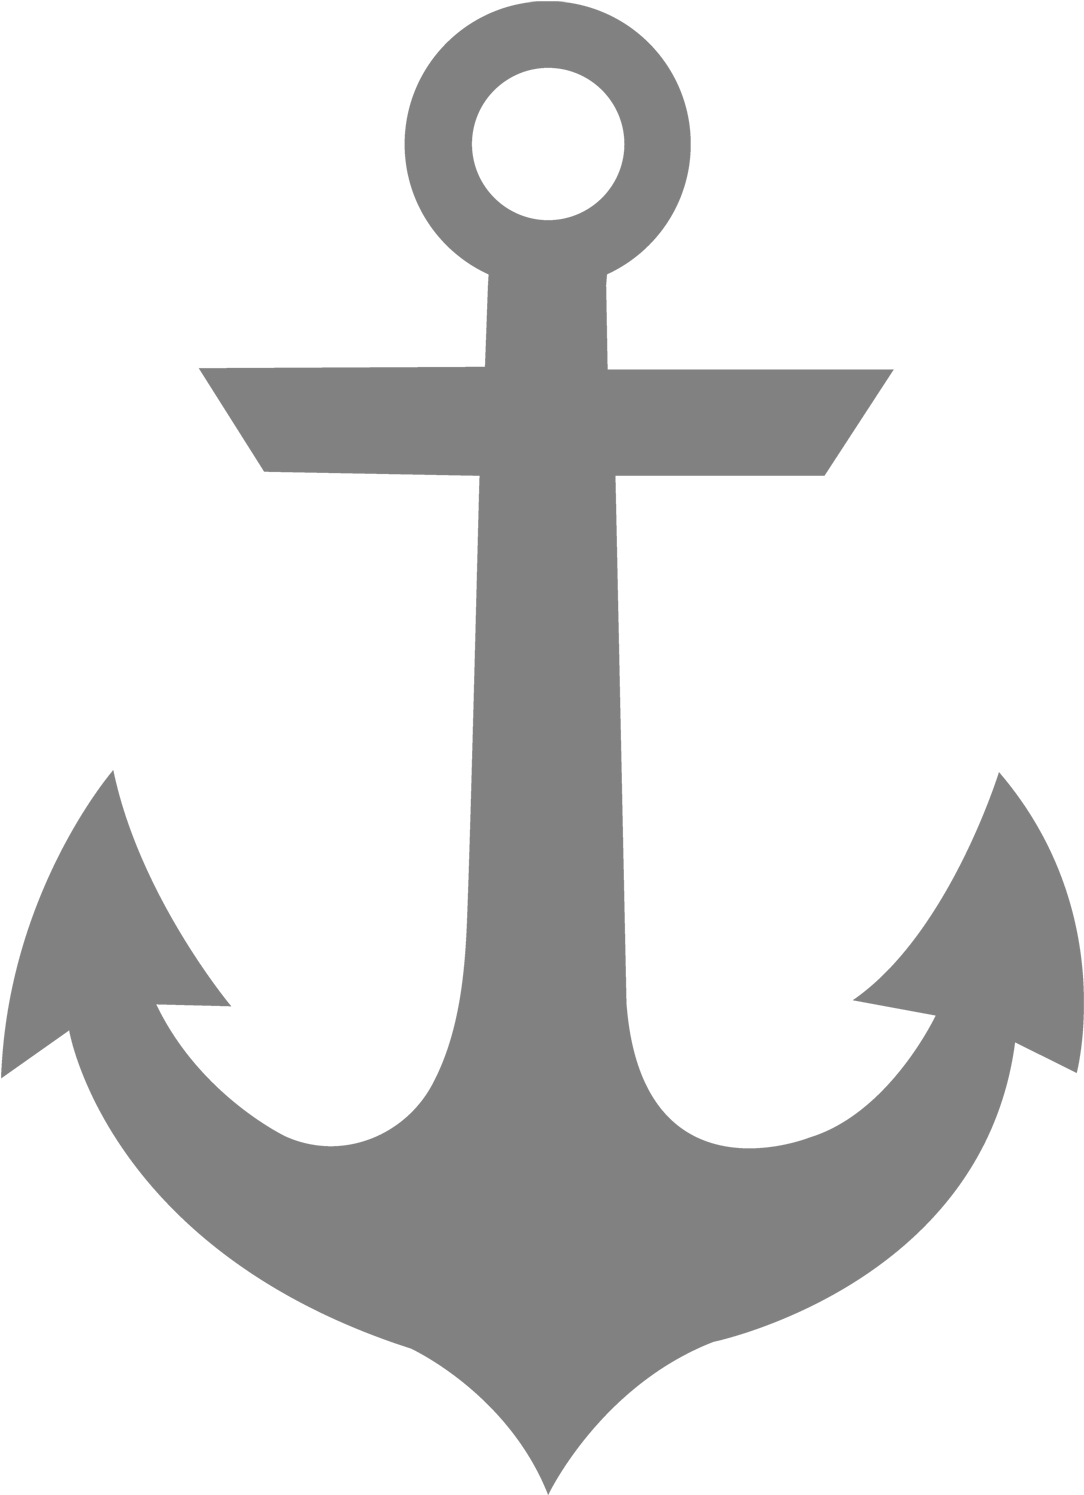 Anchor clipart downloadable picture free stock Collection Of Free Inboard - Anchor Clipart Transparent - Png ... picture free stock